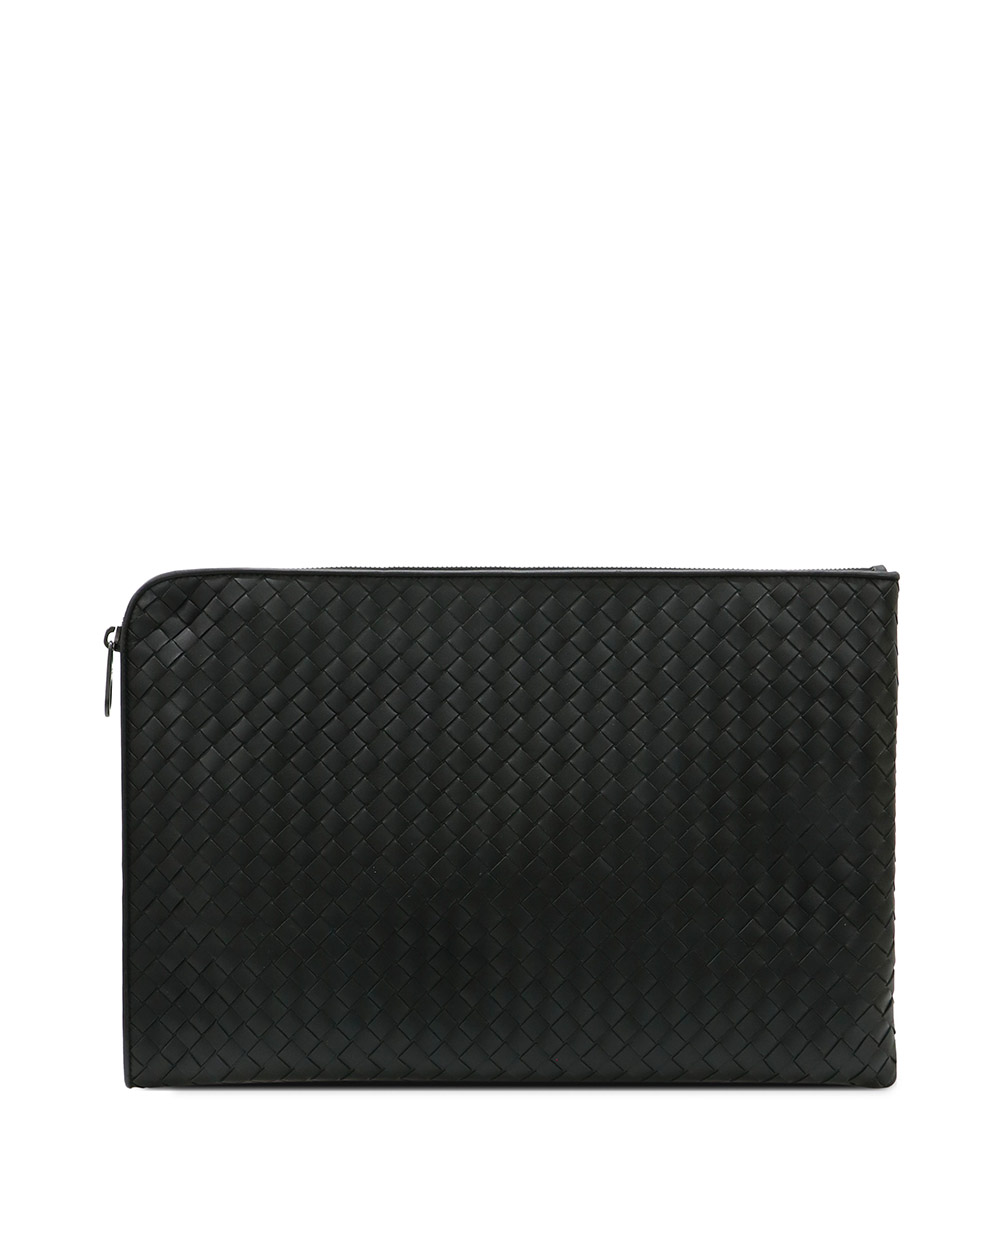 Woven leather Clutch 2